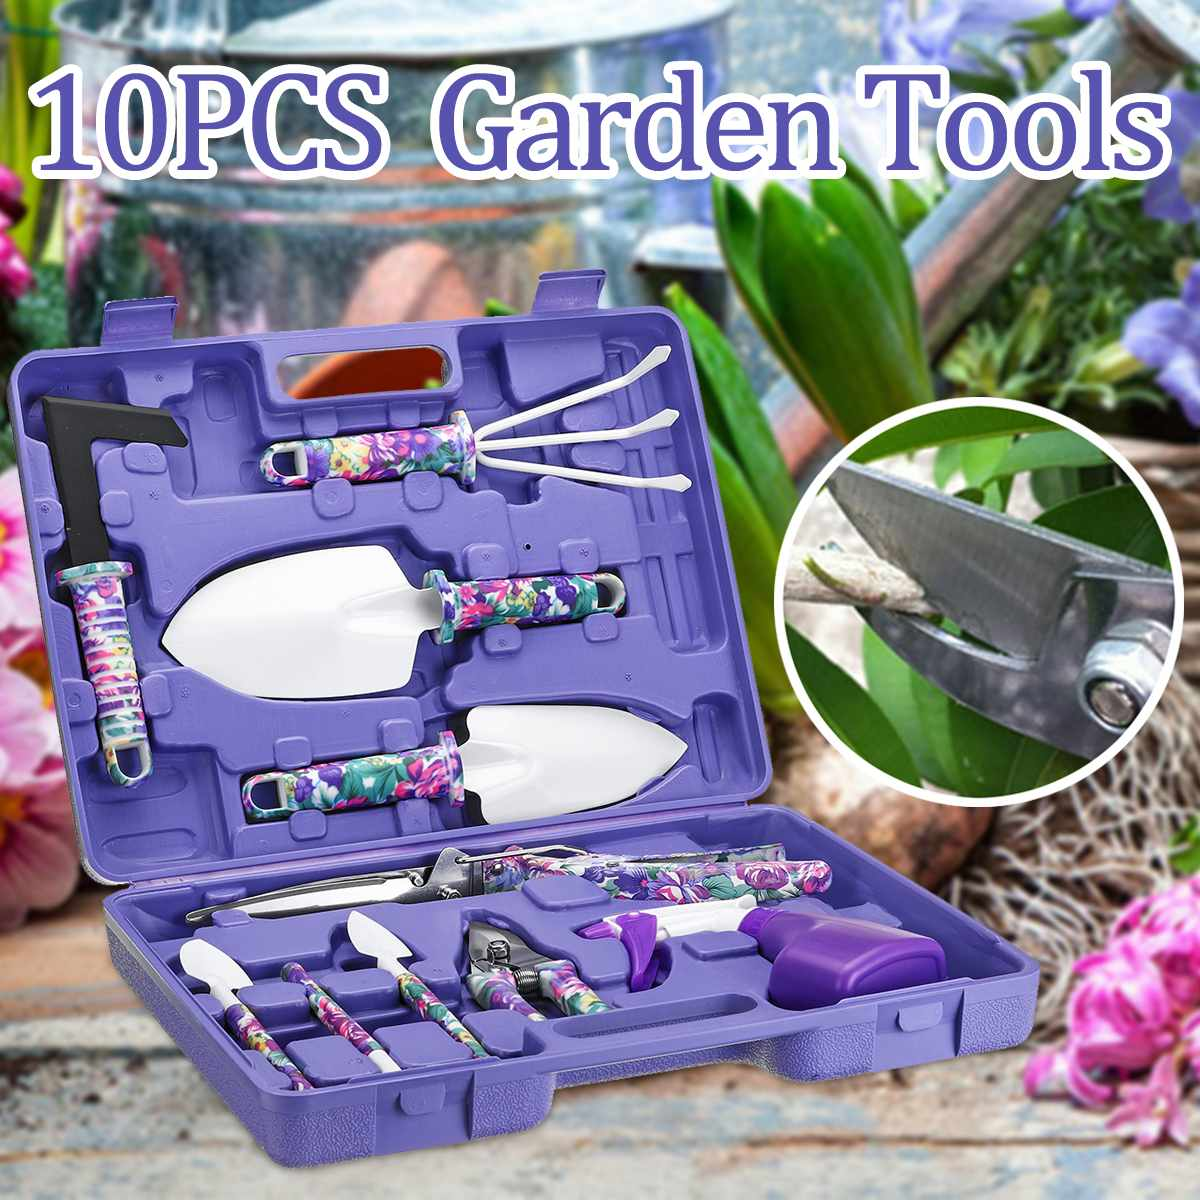 10pcs Garden Tools Set Lightweight Gardening Tools Kit Pruner Trowel Transplanting Spade Rake Spray Bottle With Box Gift